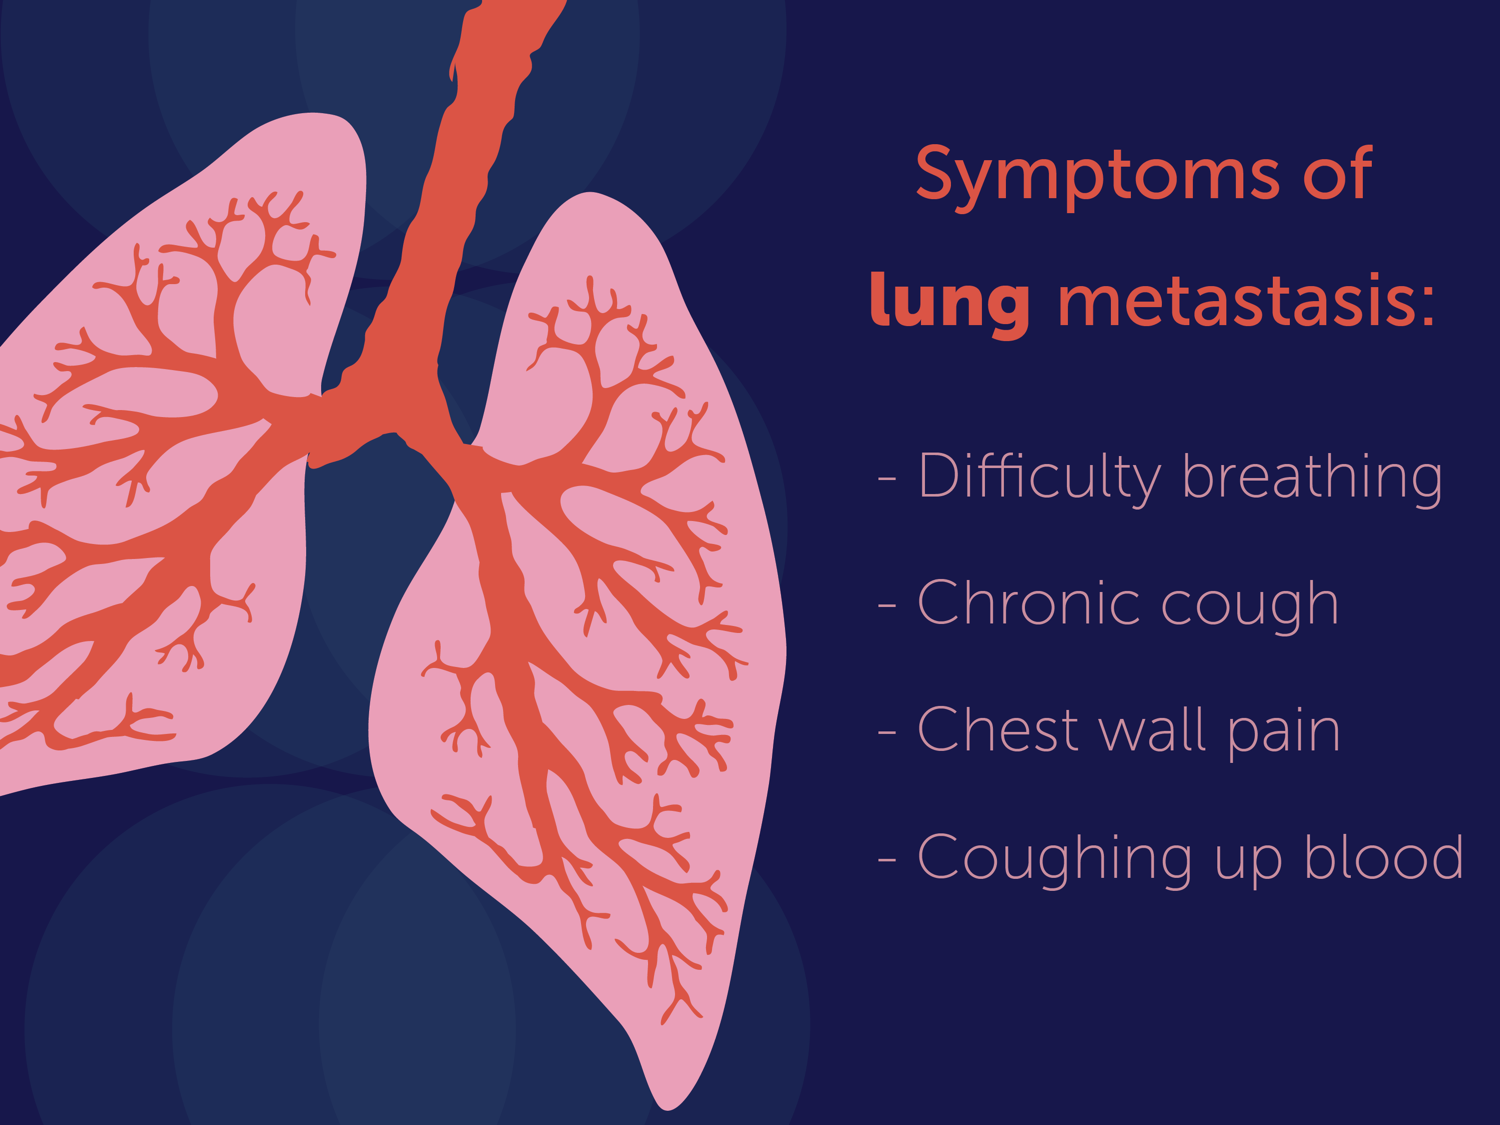 Symptoms of lung metastasis: difficulty breathing, chronic cough, chest wall pain, and coughing up blood.